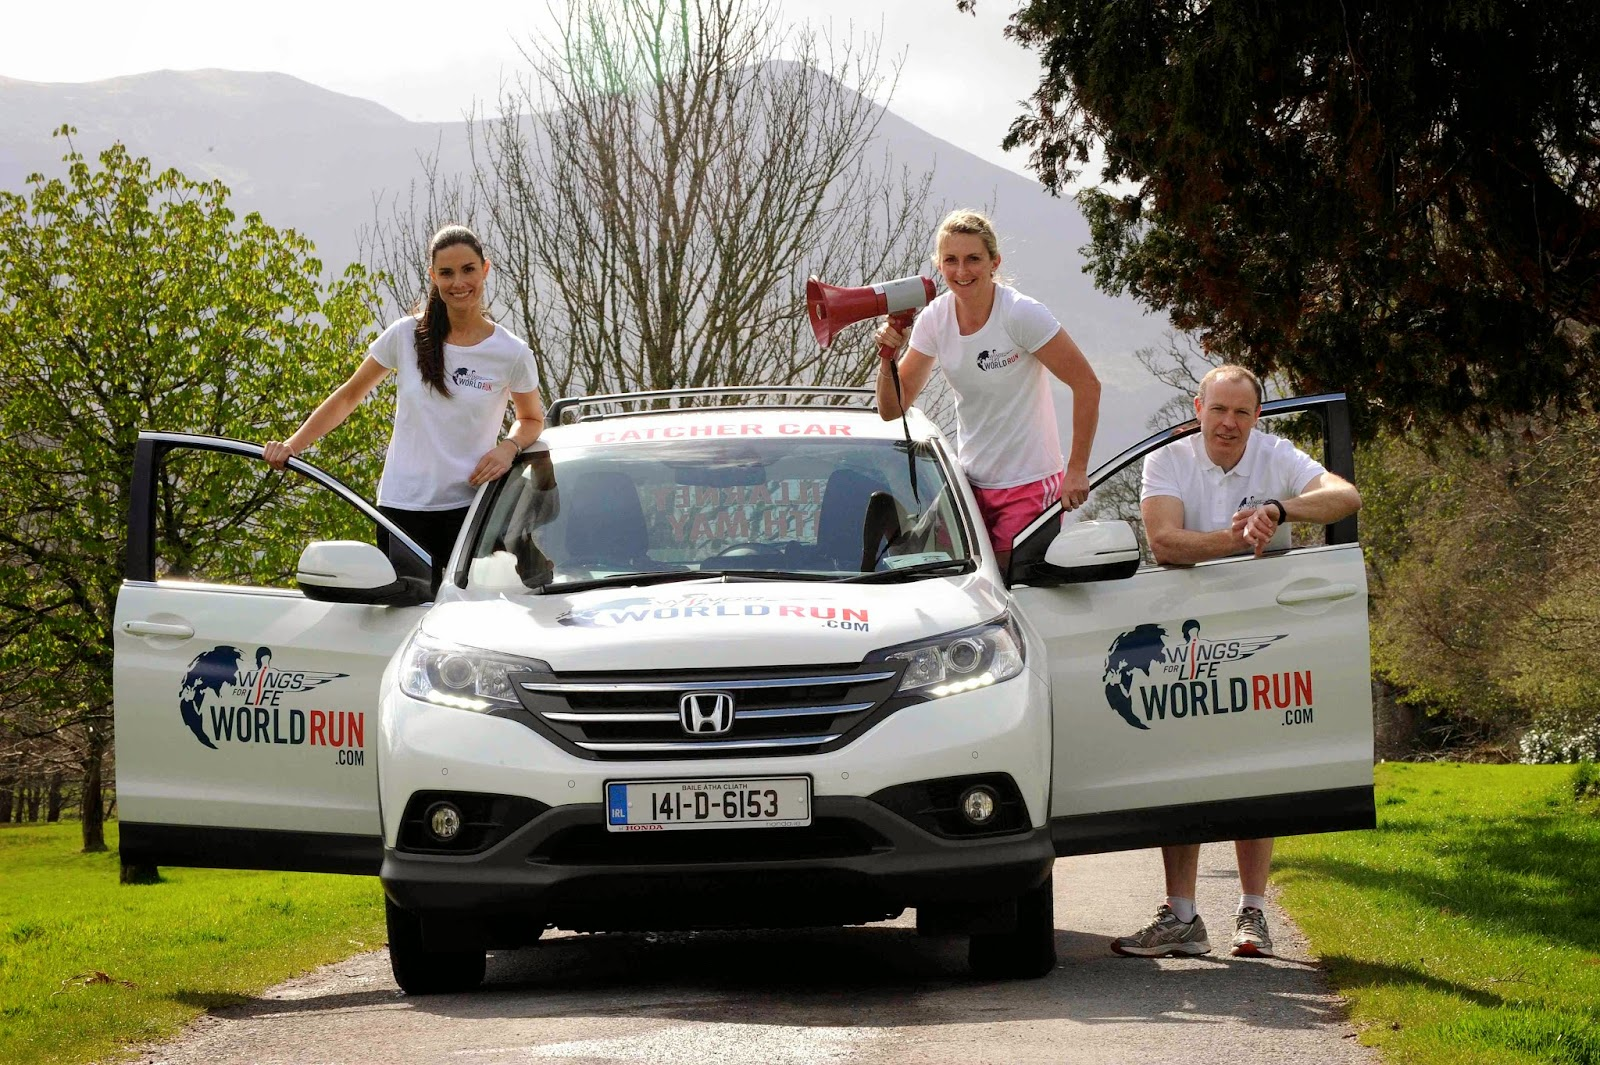 Honda are the official vehicle sponsor of the Wings for Life World Run